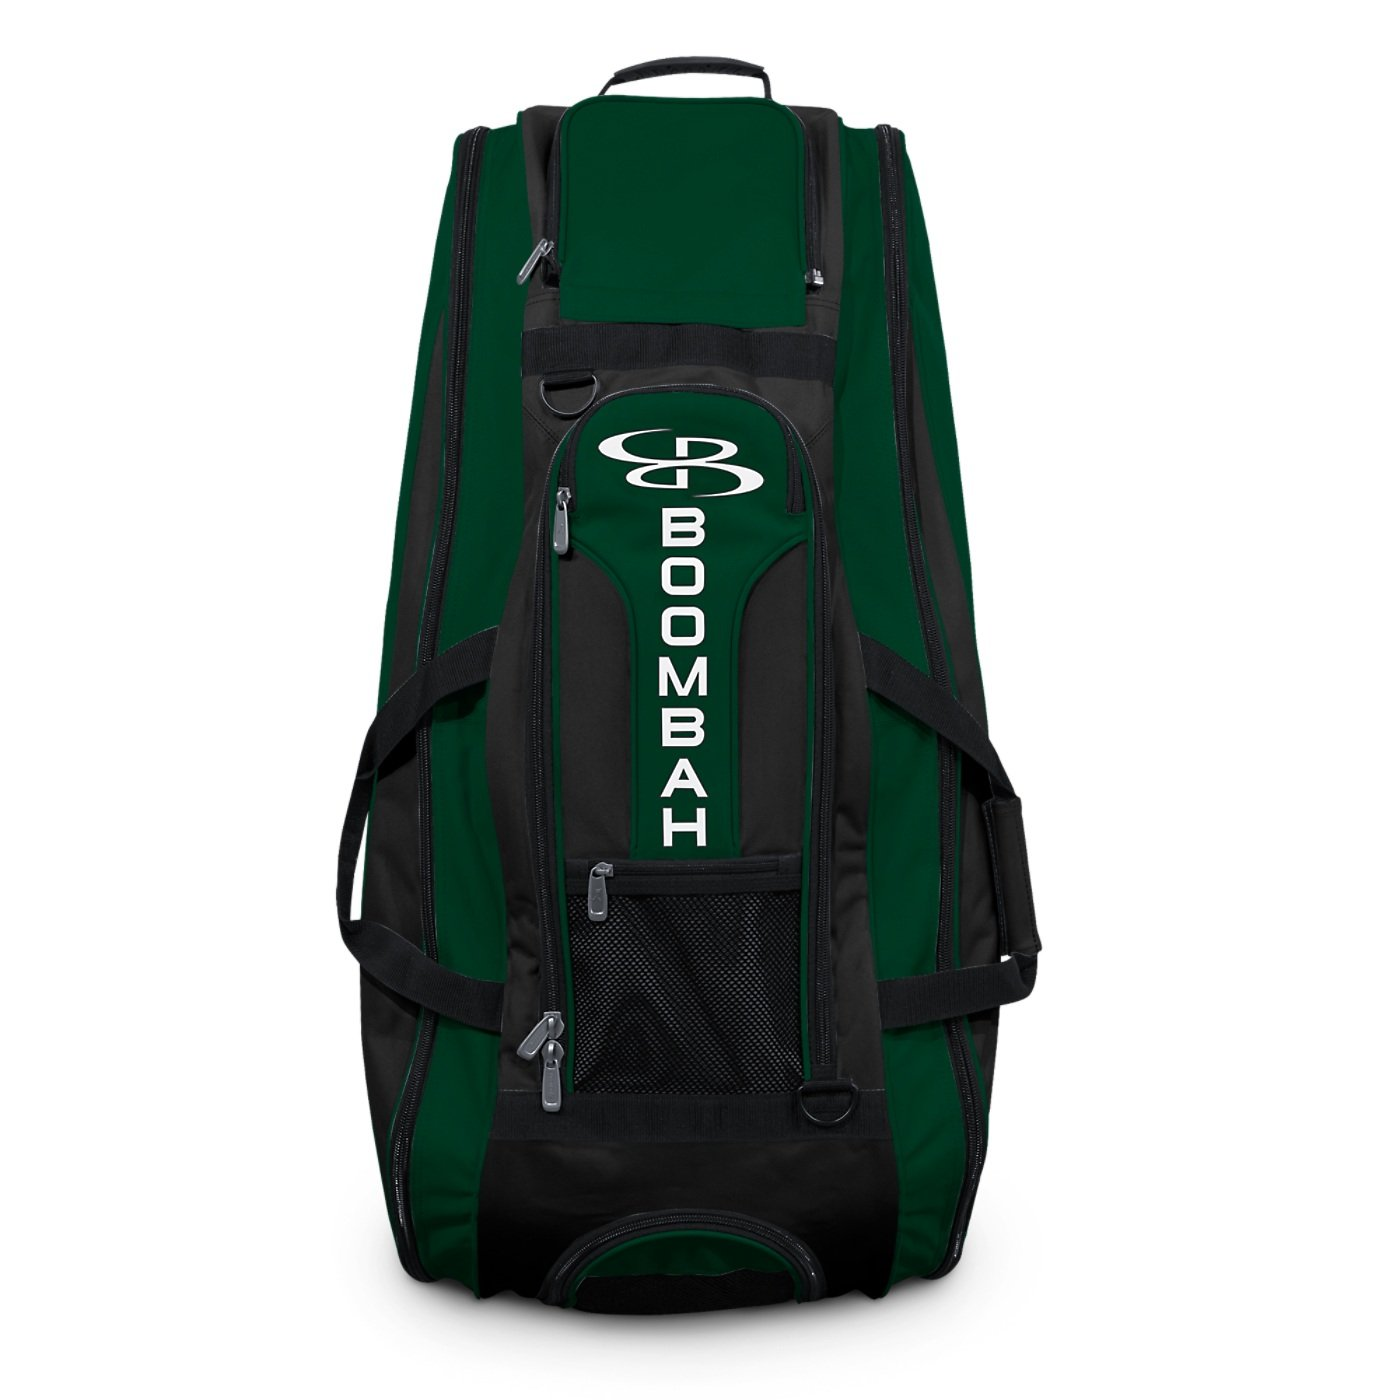 Boombah Beast Baseball/Softball Bat Bag - 40'' x 14'' x 13'' - Black/Dk Green - Holds 8 Bats, Glove & Shoe Compartments by Boombah (Image #3)